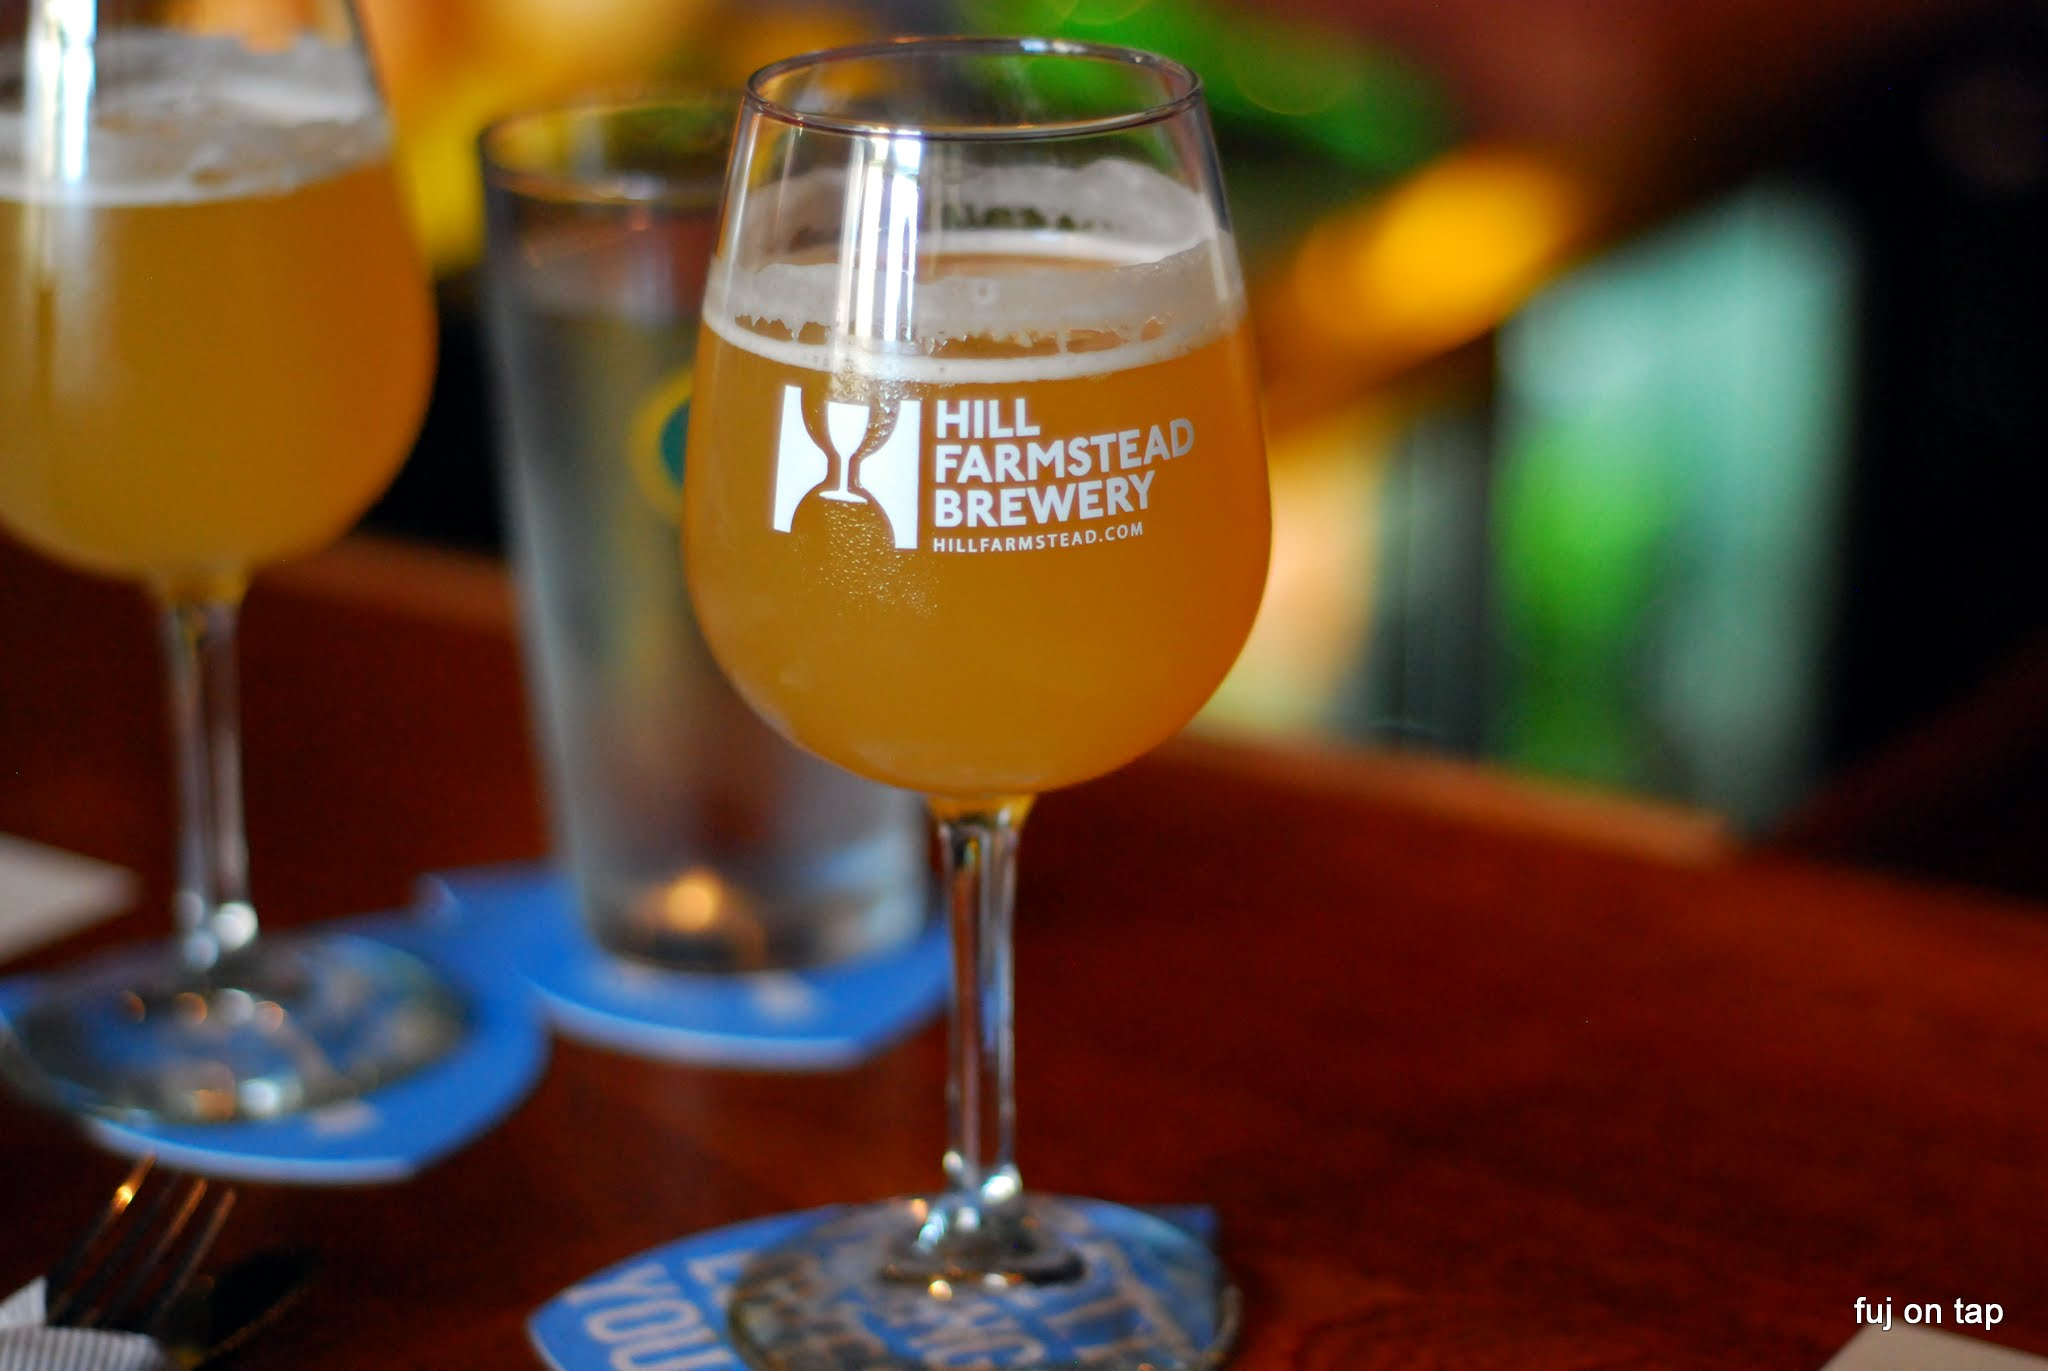 Hill Farmstead and Alchemist collaboration Walden